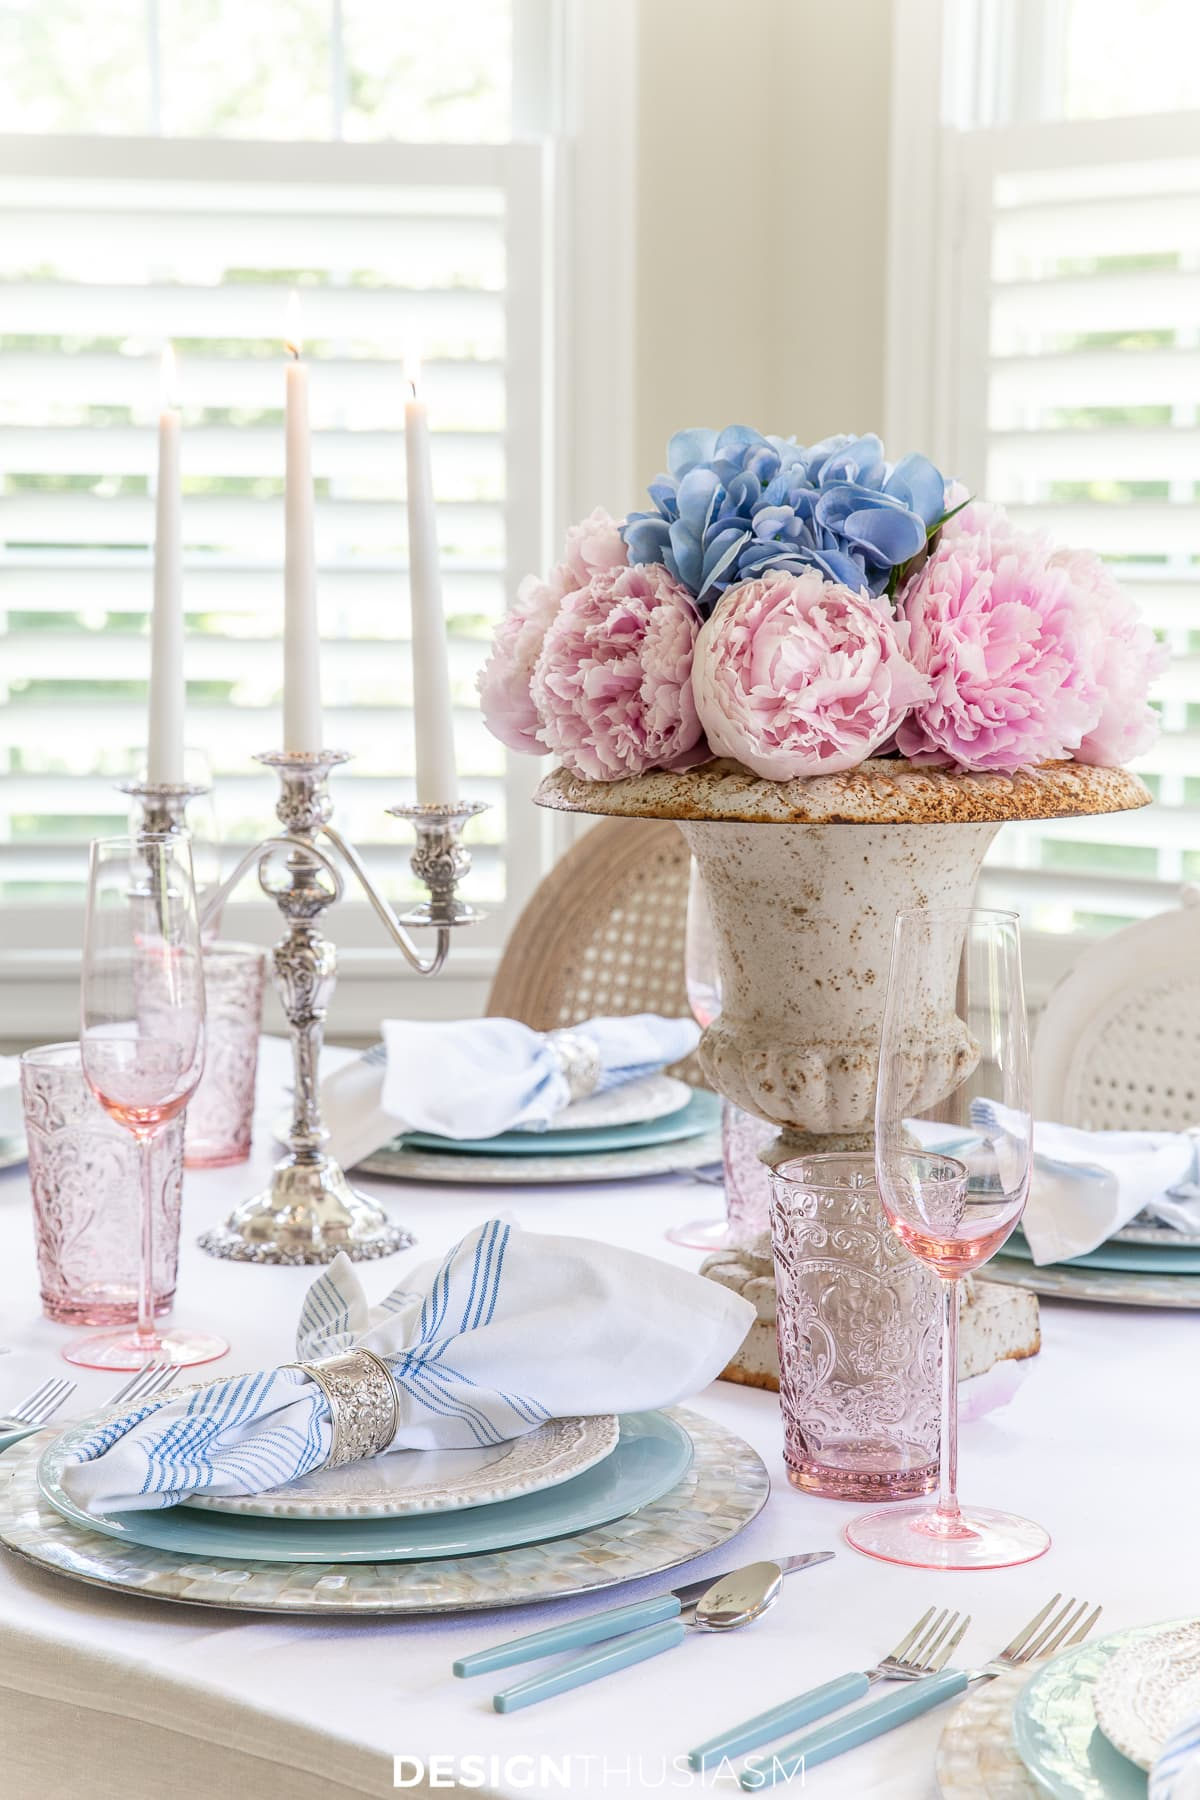 Summer Color: A Retro Summer Color Palette to Update Your Decor